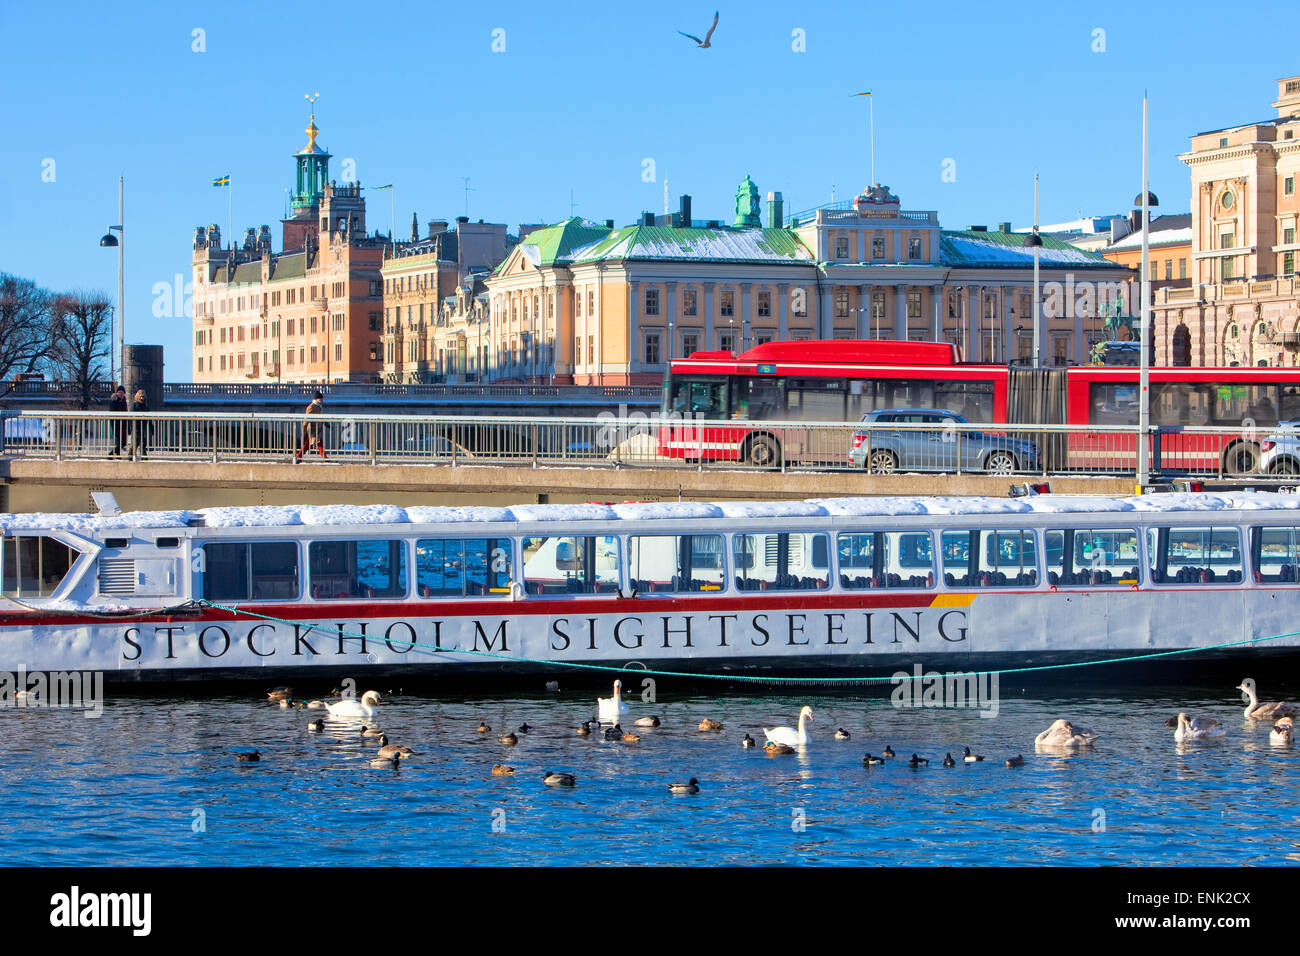 Sweden, Stockholm - Sightseeing Boat Anchored in City for Winter. - Stock Image